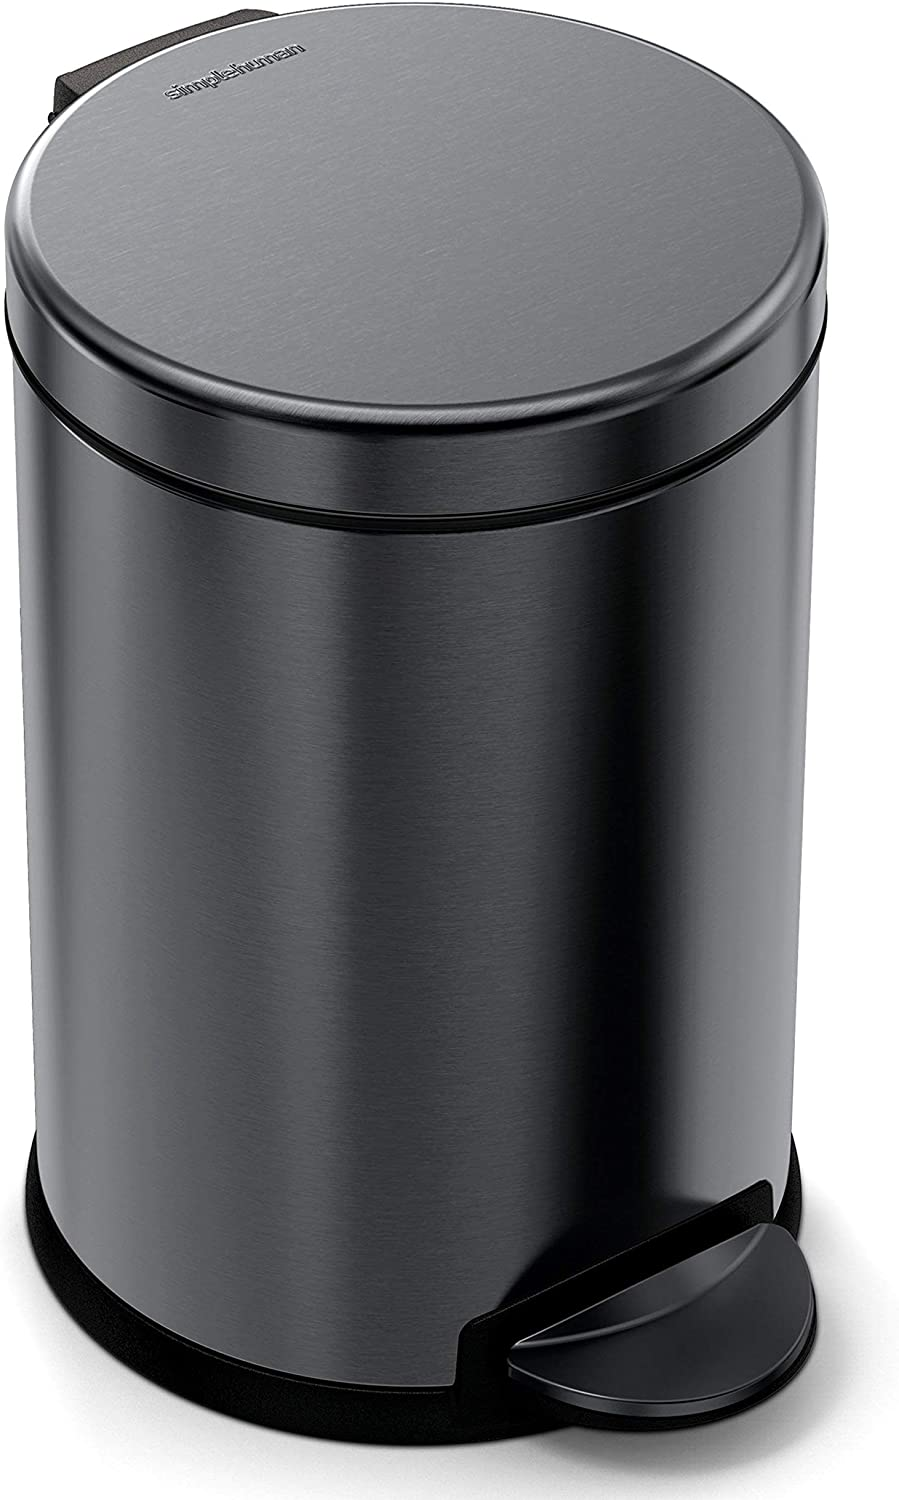 simplehuman 4.5 Liter / 1.2 Gallon Compact Stainless Steel Round Bathroom Trash Can, Black Stainless Steel